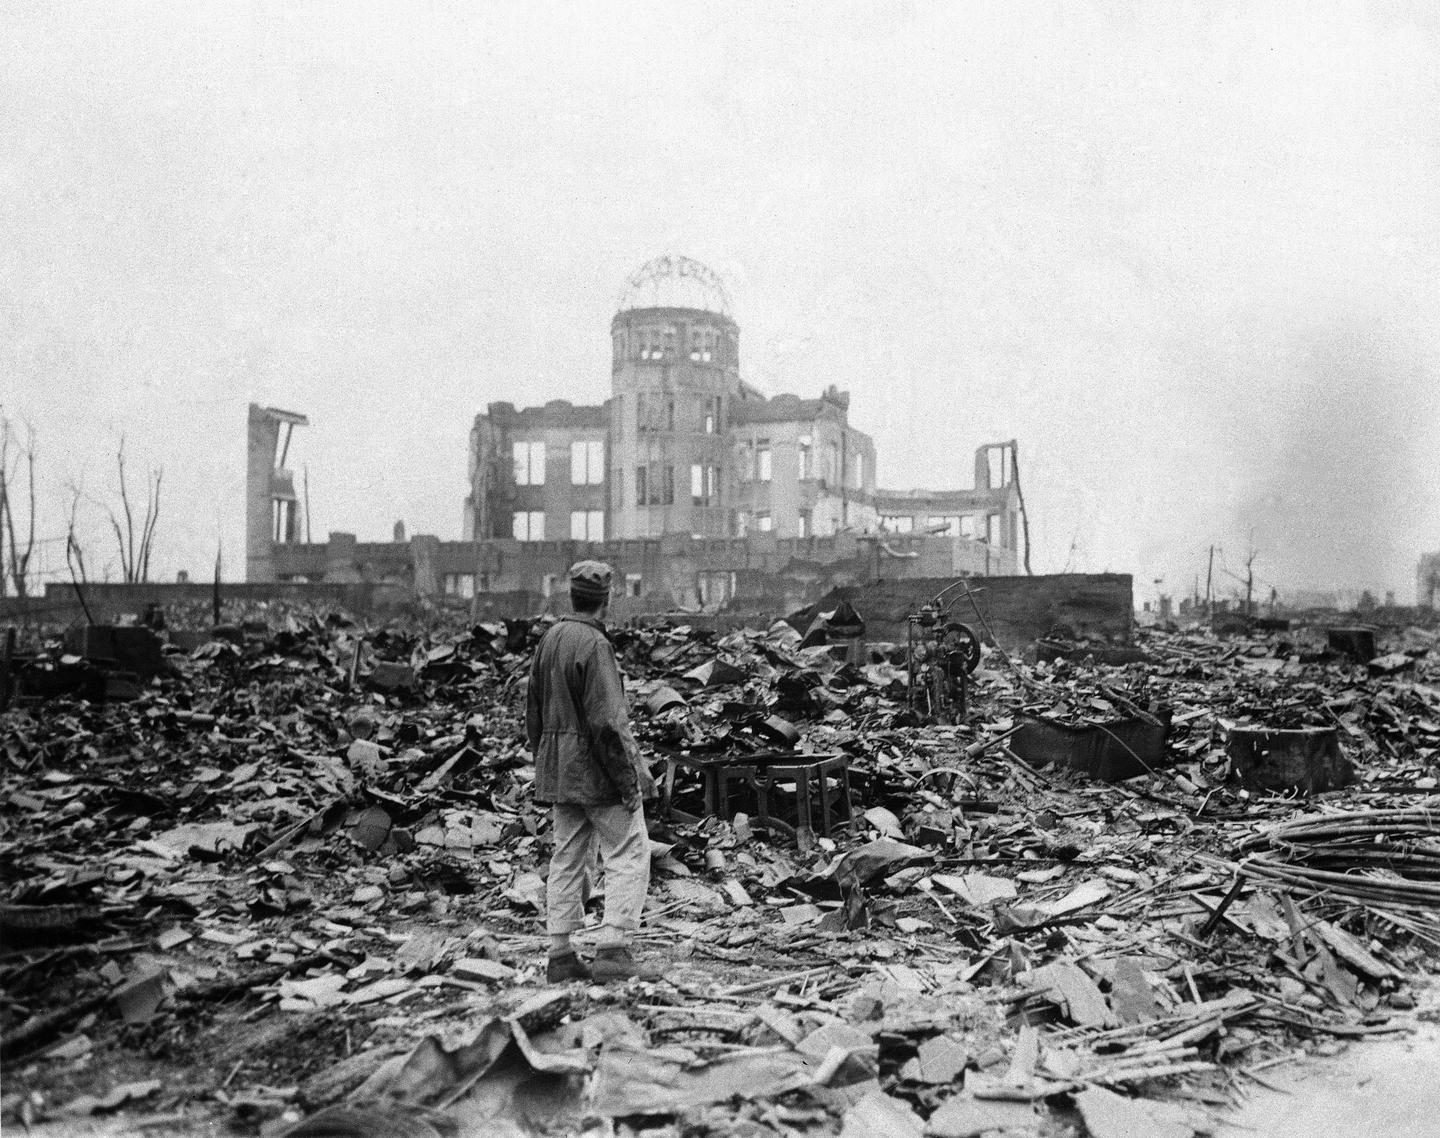 Startling Facts About the Atomic Bombings of Hiroshima and Nagaski